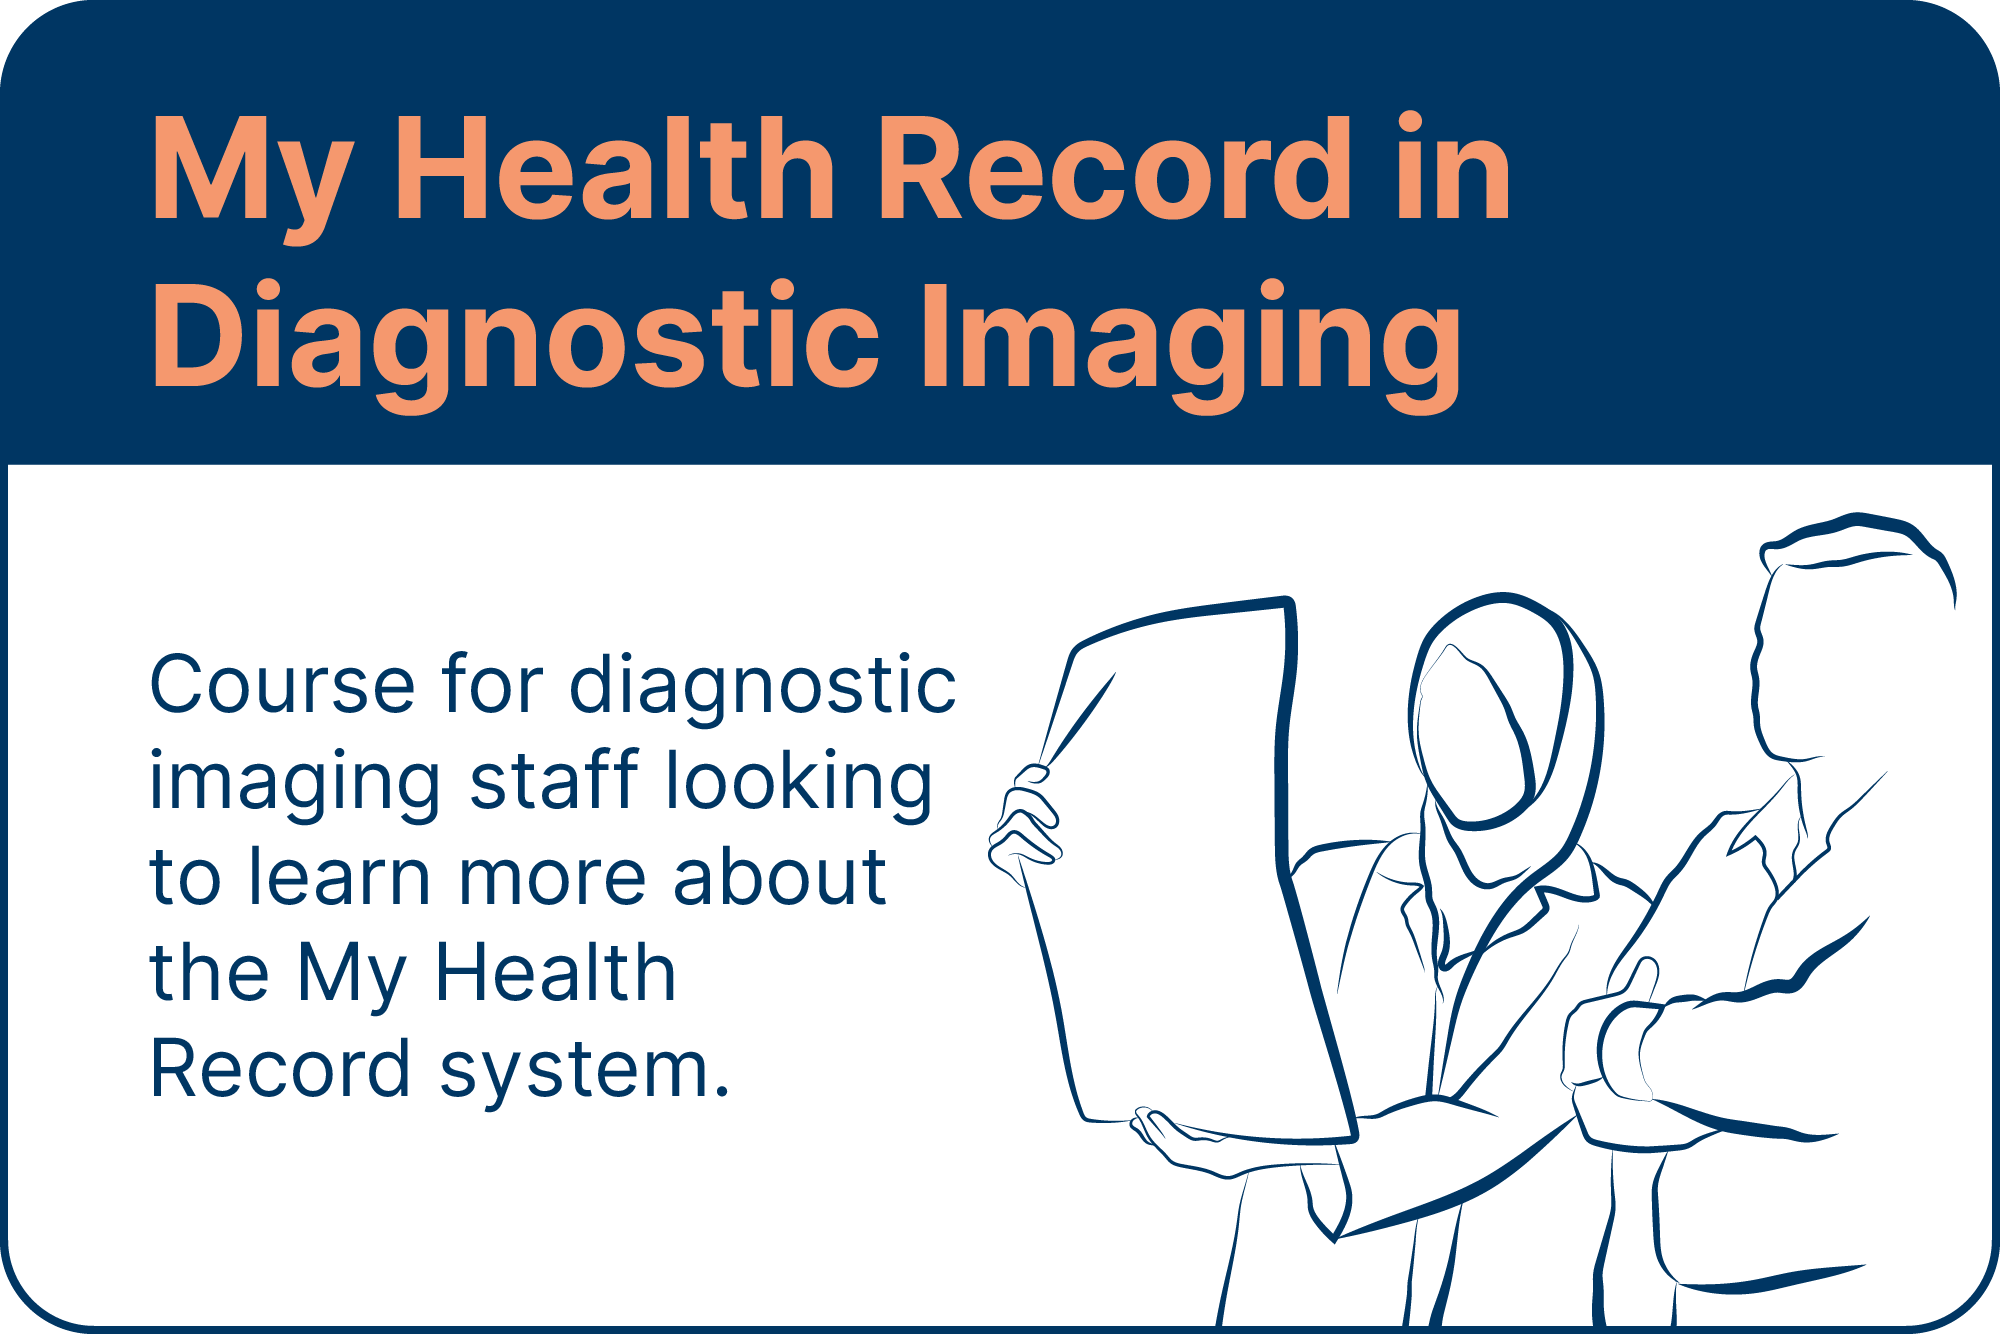 My health record in diagnostic imaging